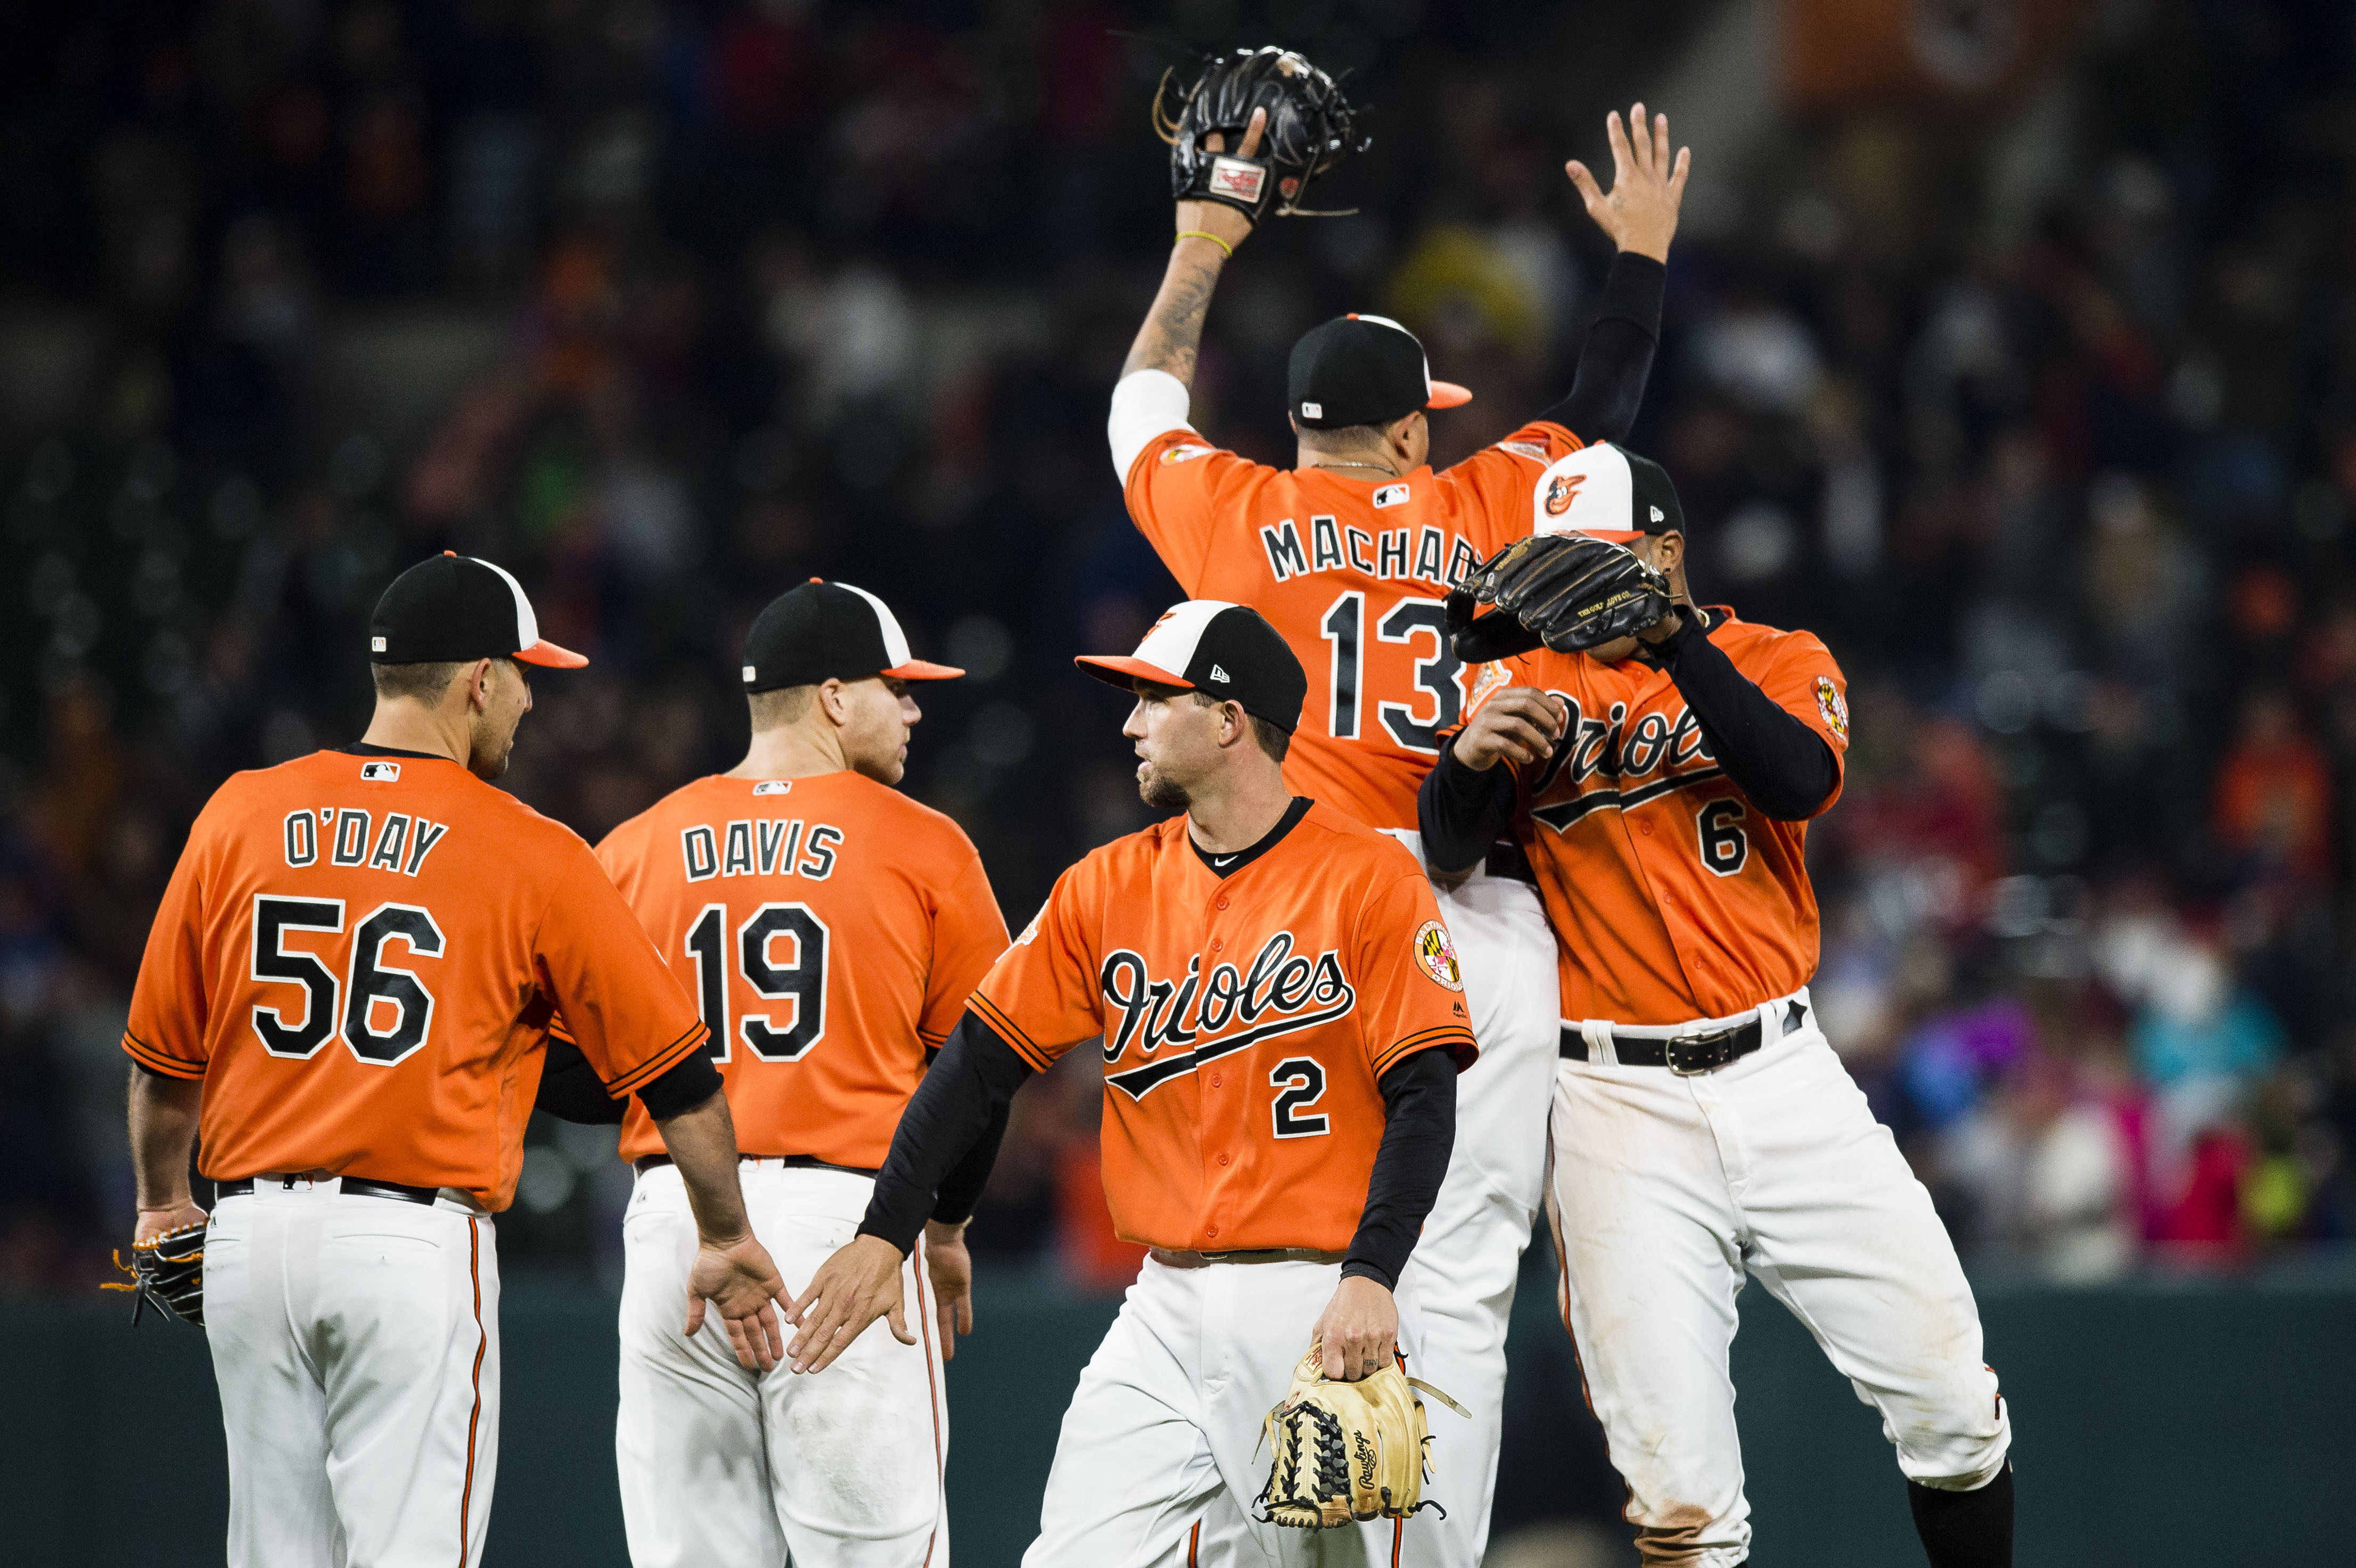 Baltimore Orioles: Through 16 games, this team is clicking ...